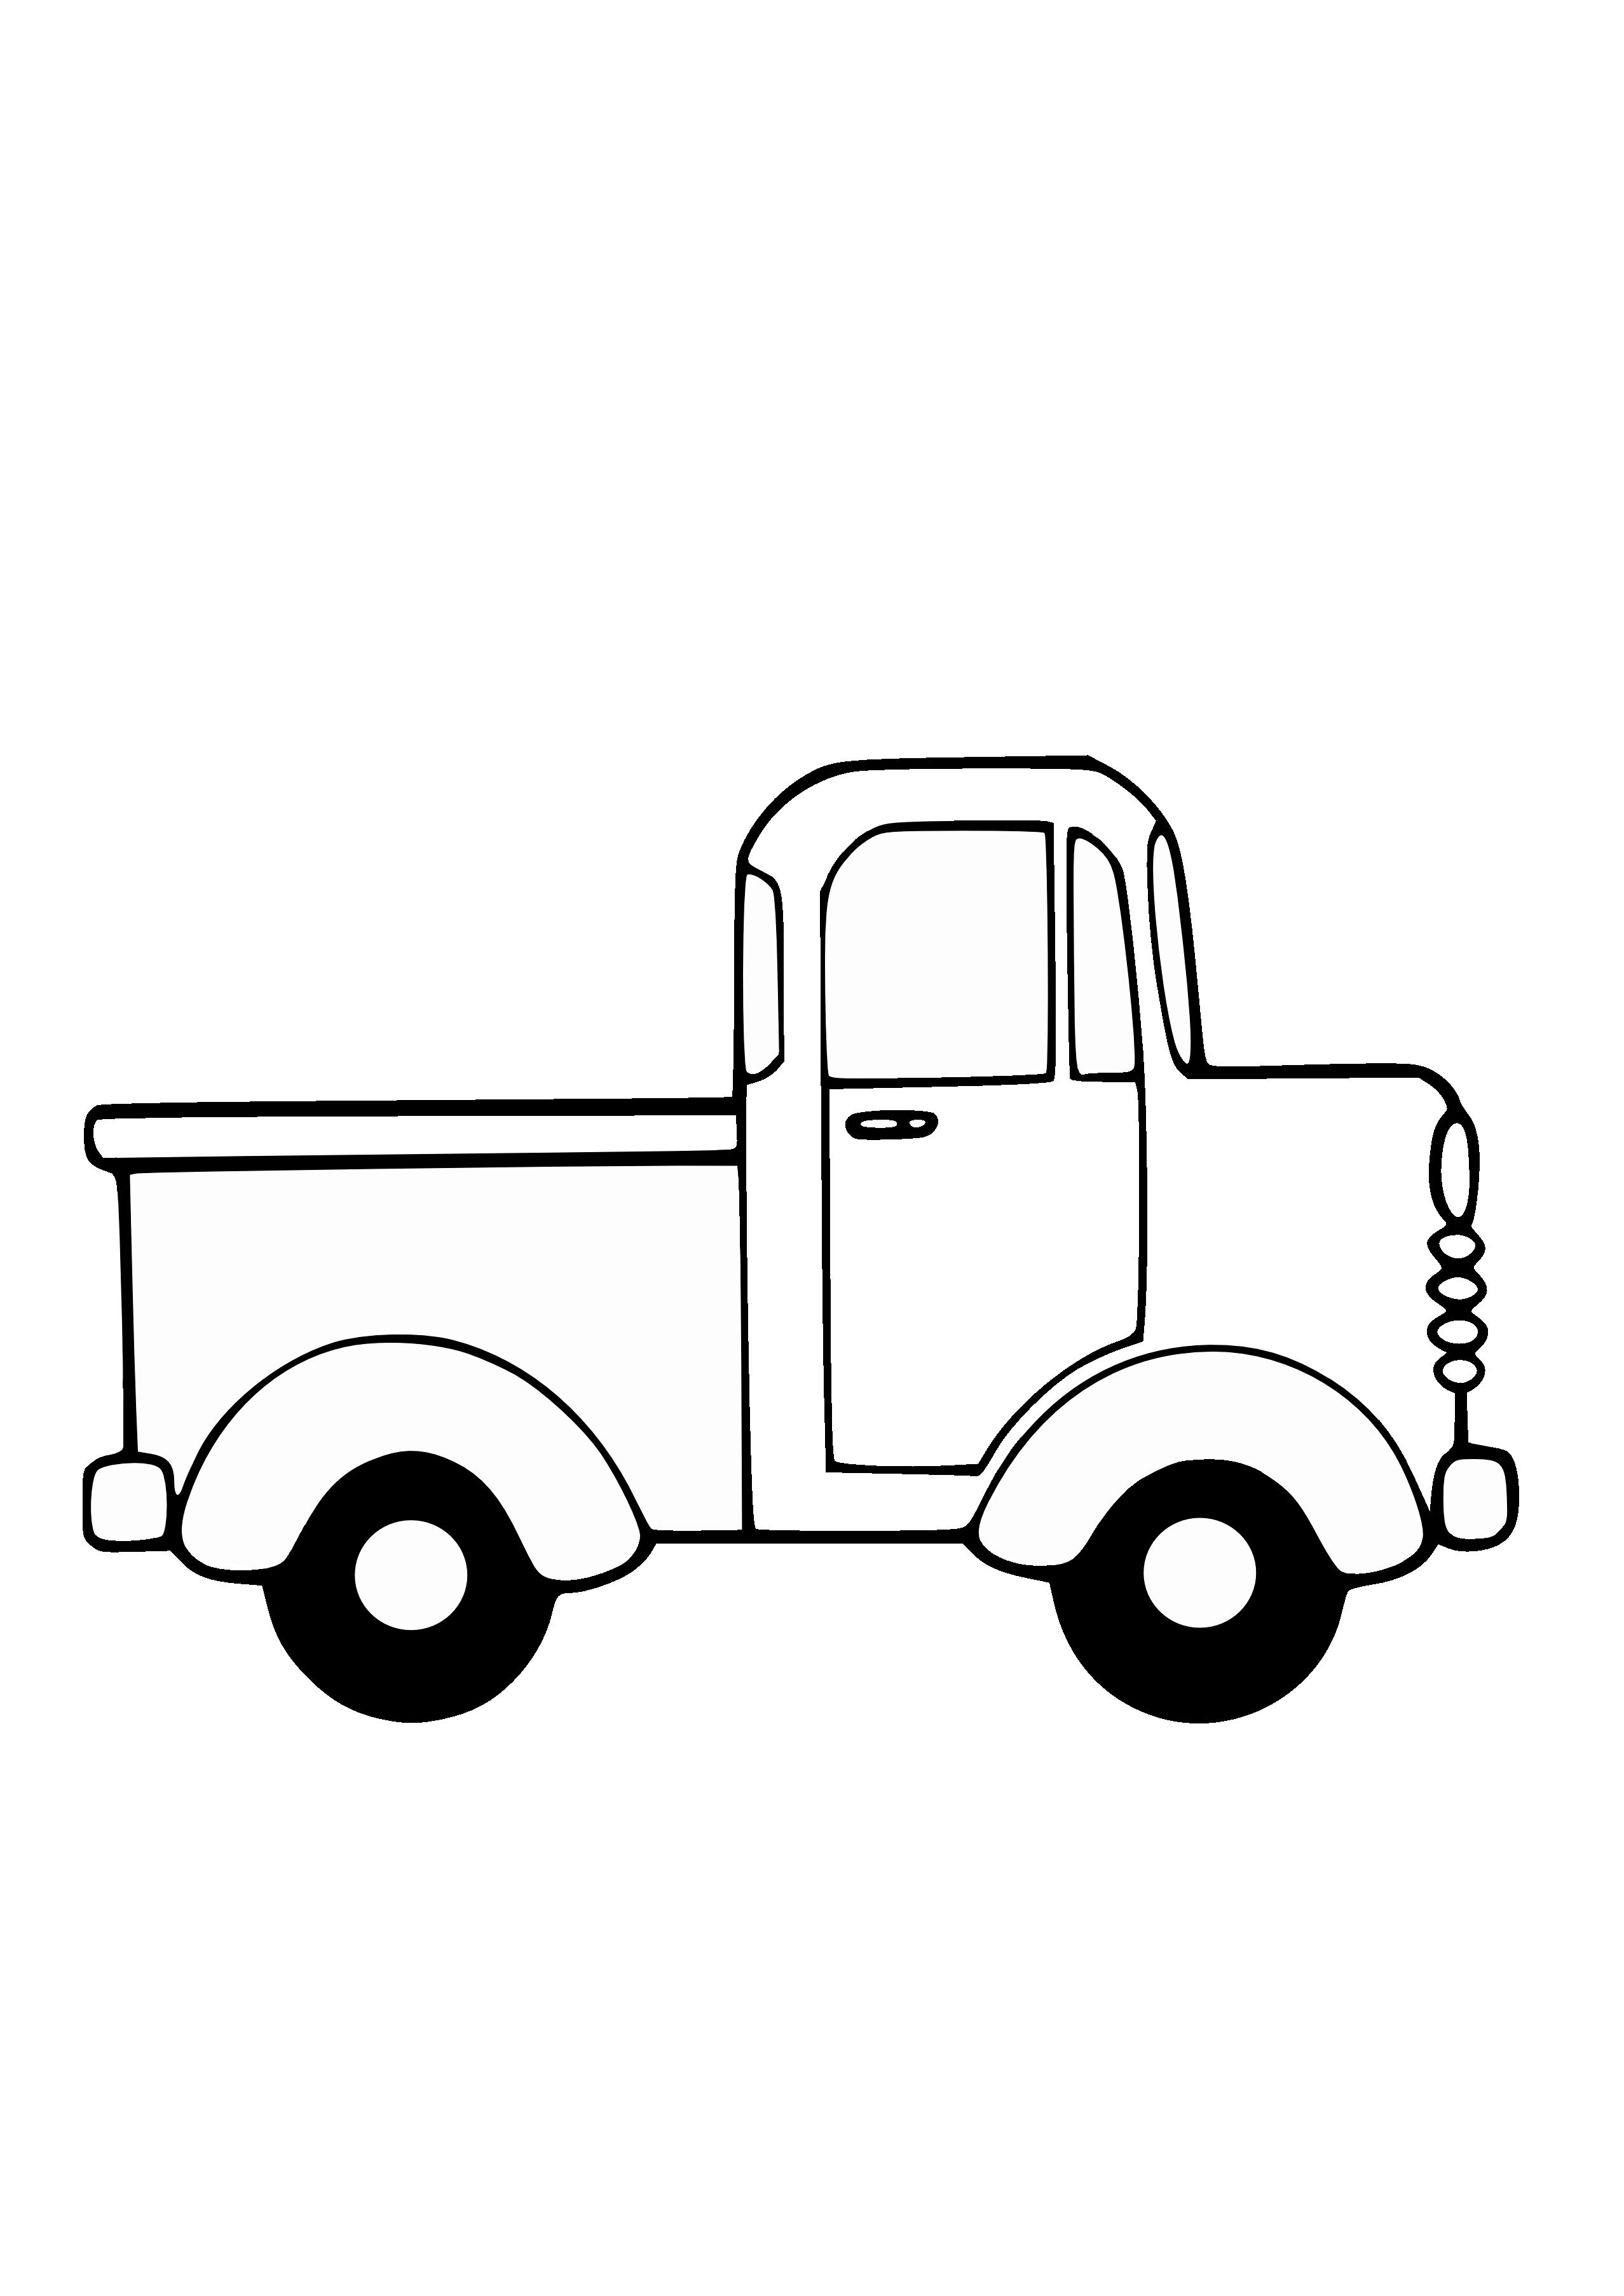 Recycling Truck Coloring Page Awesome Free Truck Image Download Free Clip Art Free Clip Art On In 2020 Truck Coloring Pages Free Clip Art Clipart Black And White